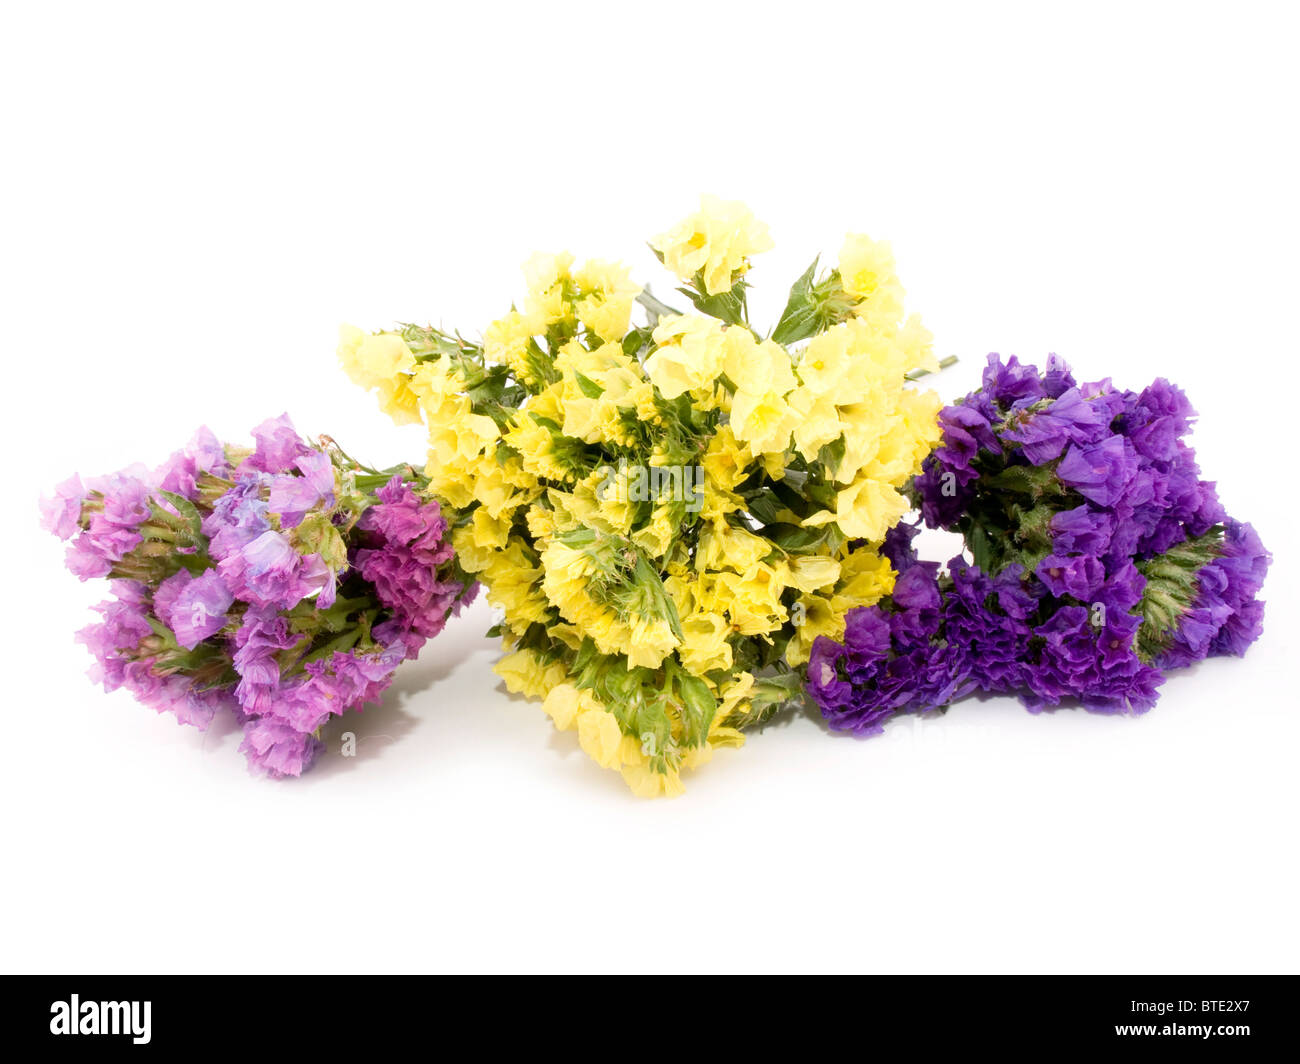 Statice stock photos statice stock images alamy bouquet of beautiful statice flowers on white background stock image mightylinksfo